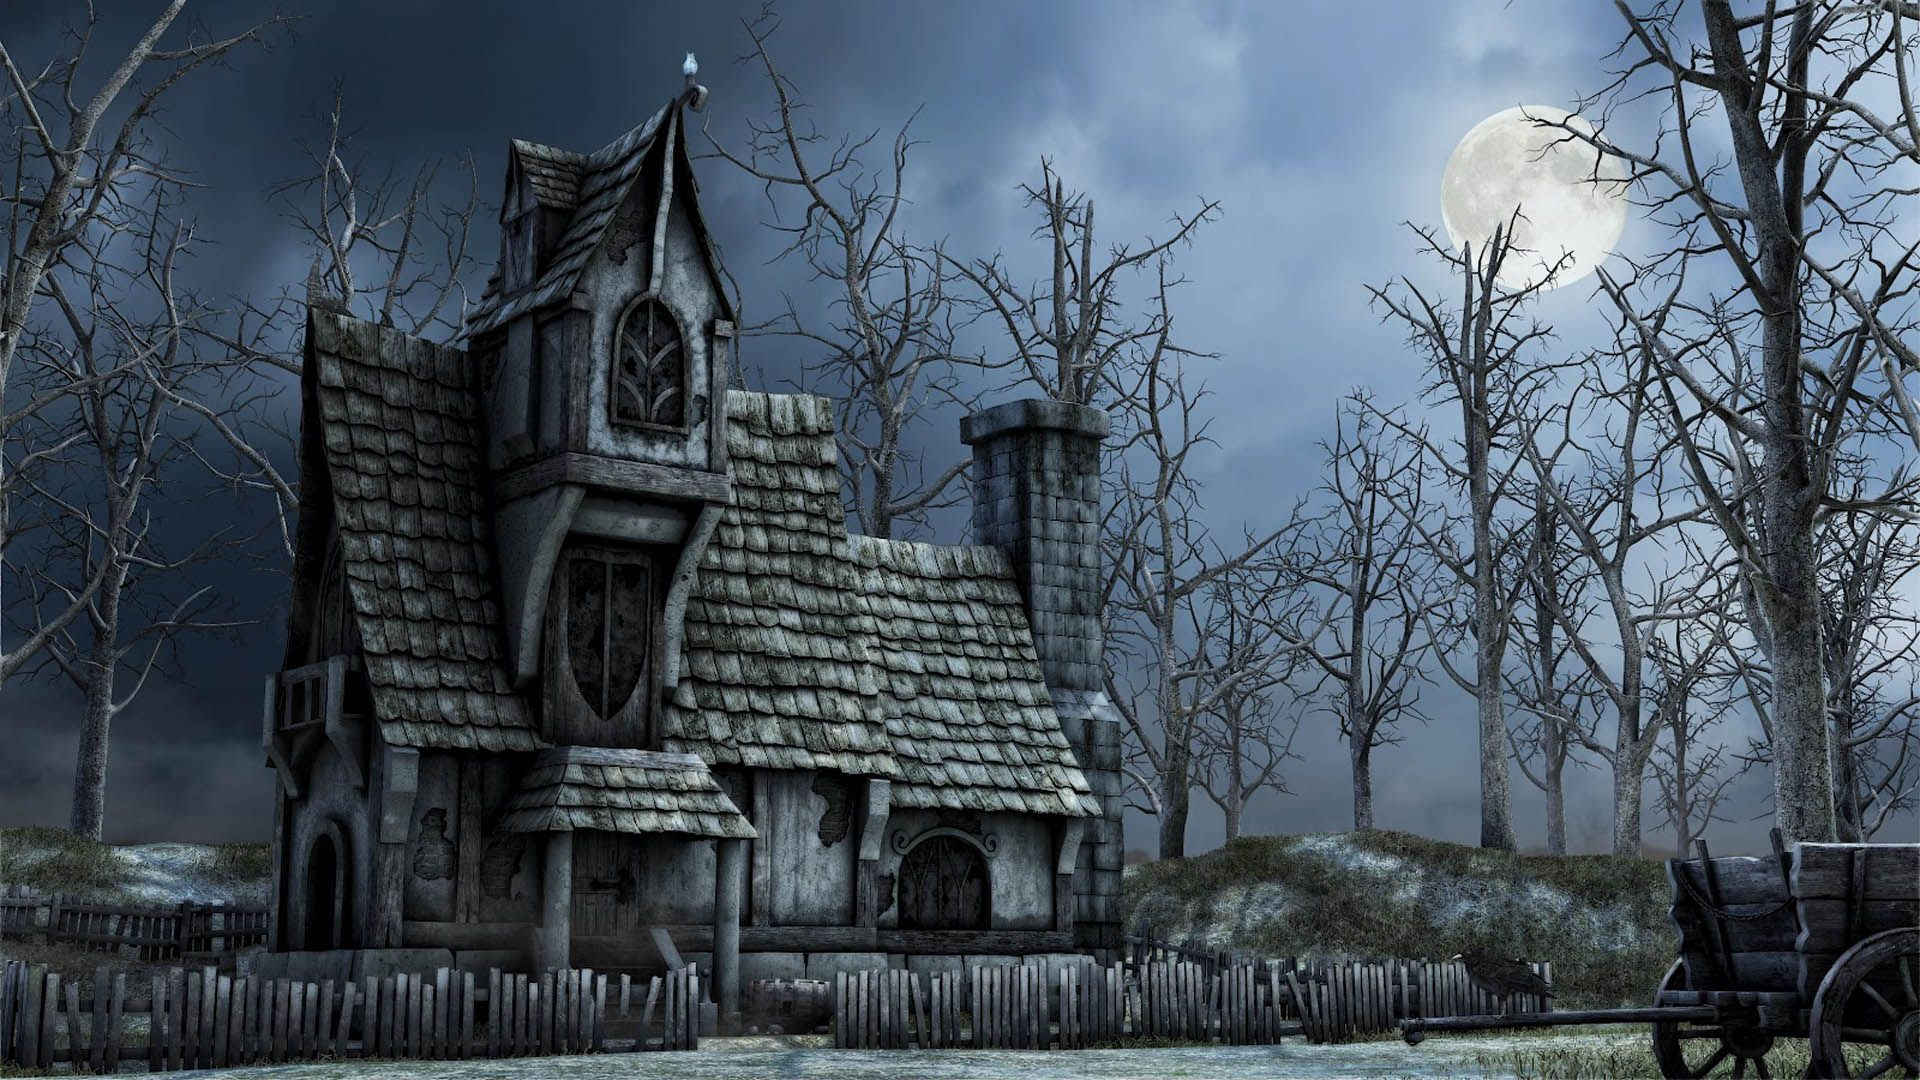 Gloomy House, Scary House, Scary Castle hd wallpaper download